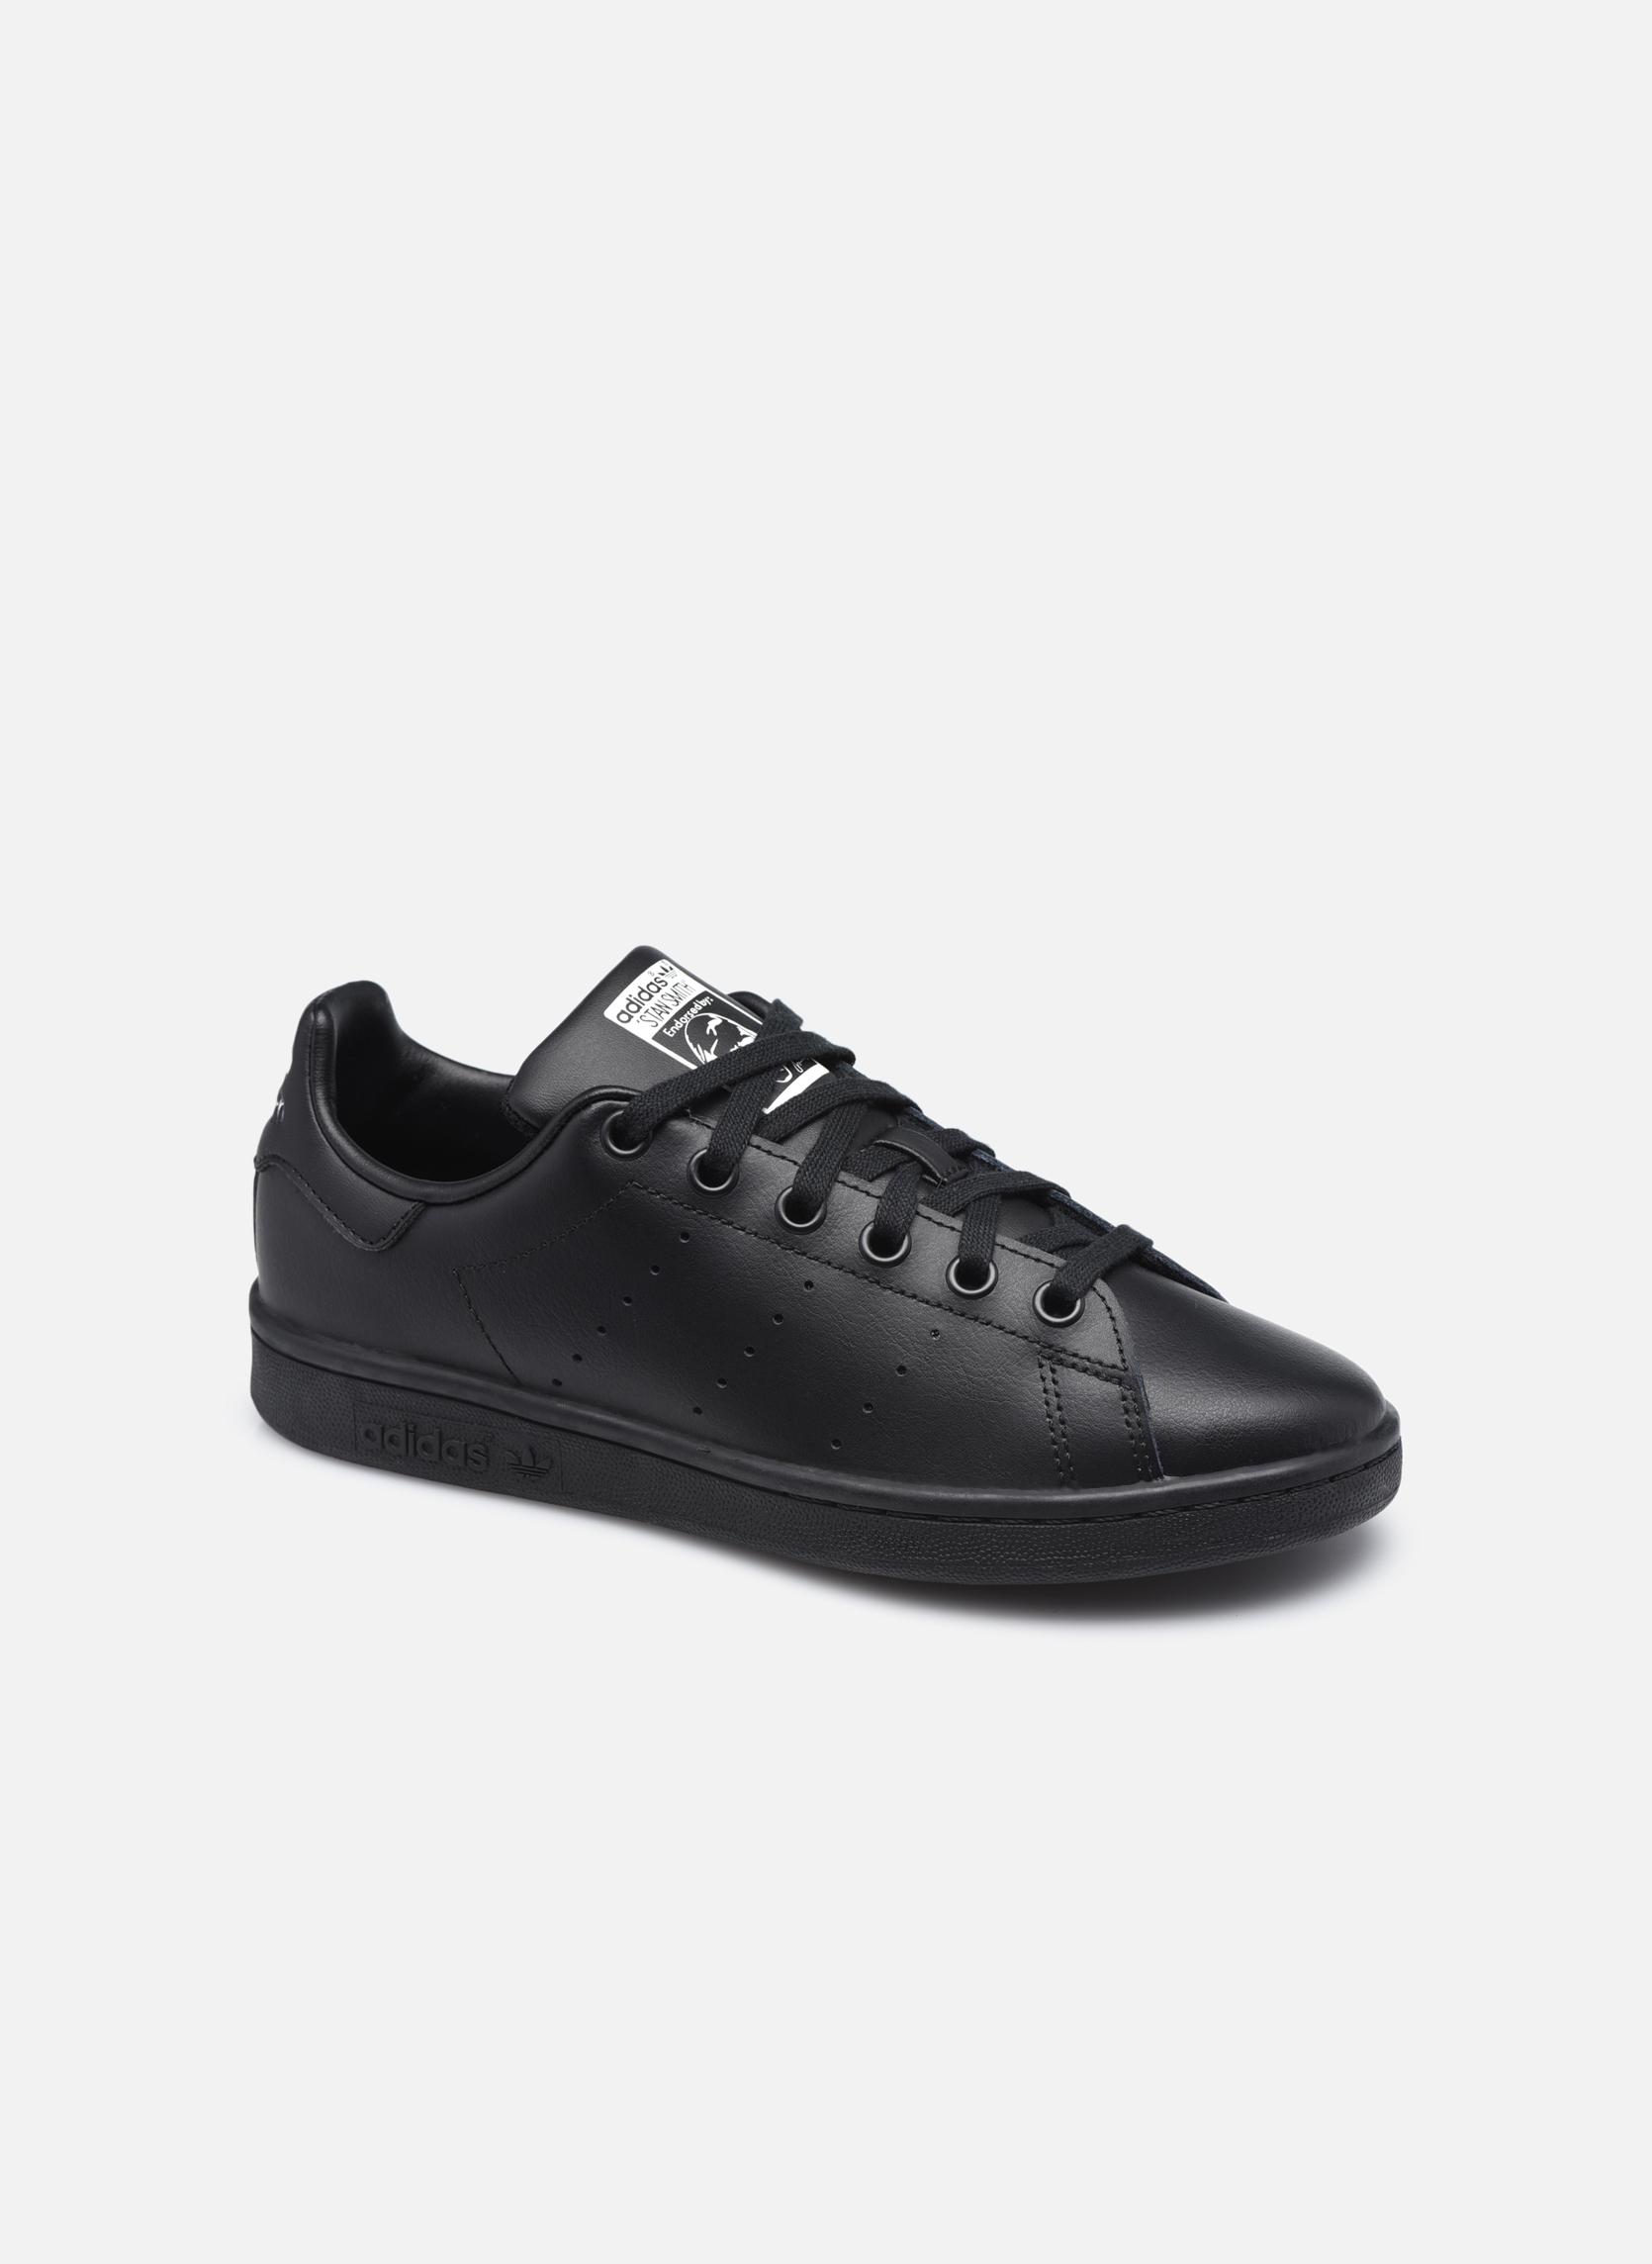 STAN SMITH J NOIR/NOIR/FTWBLA